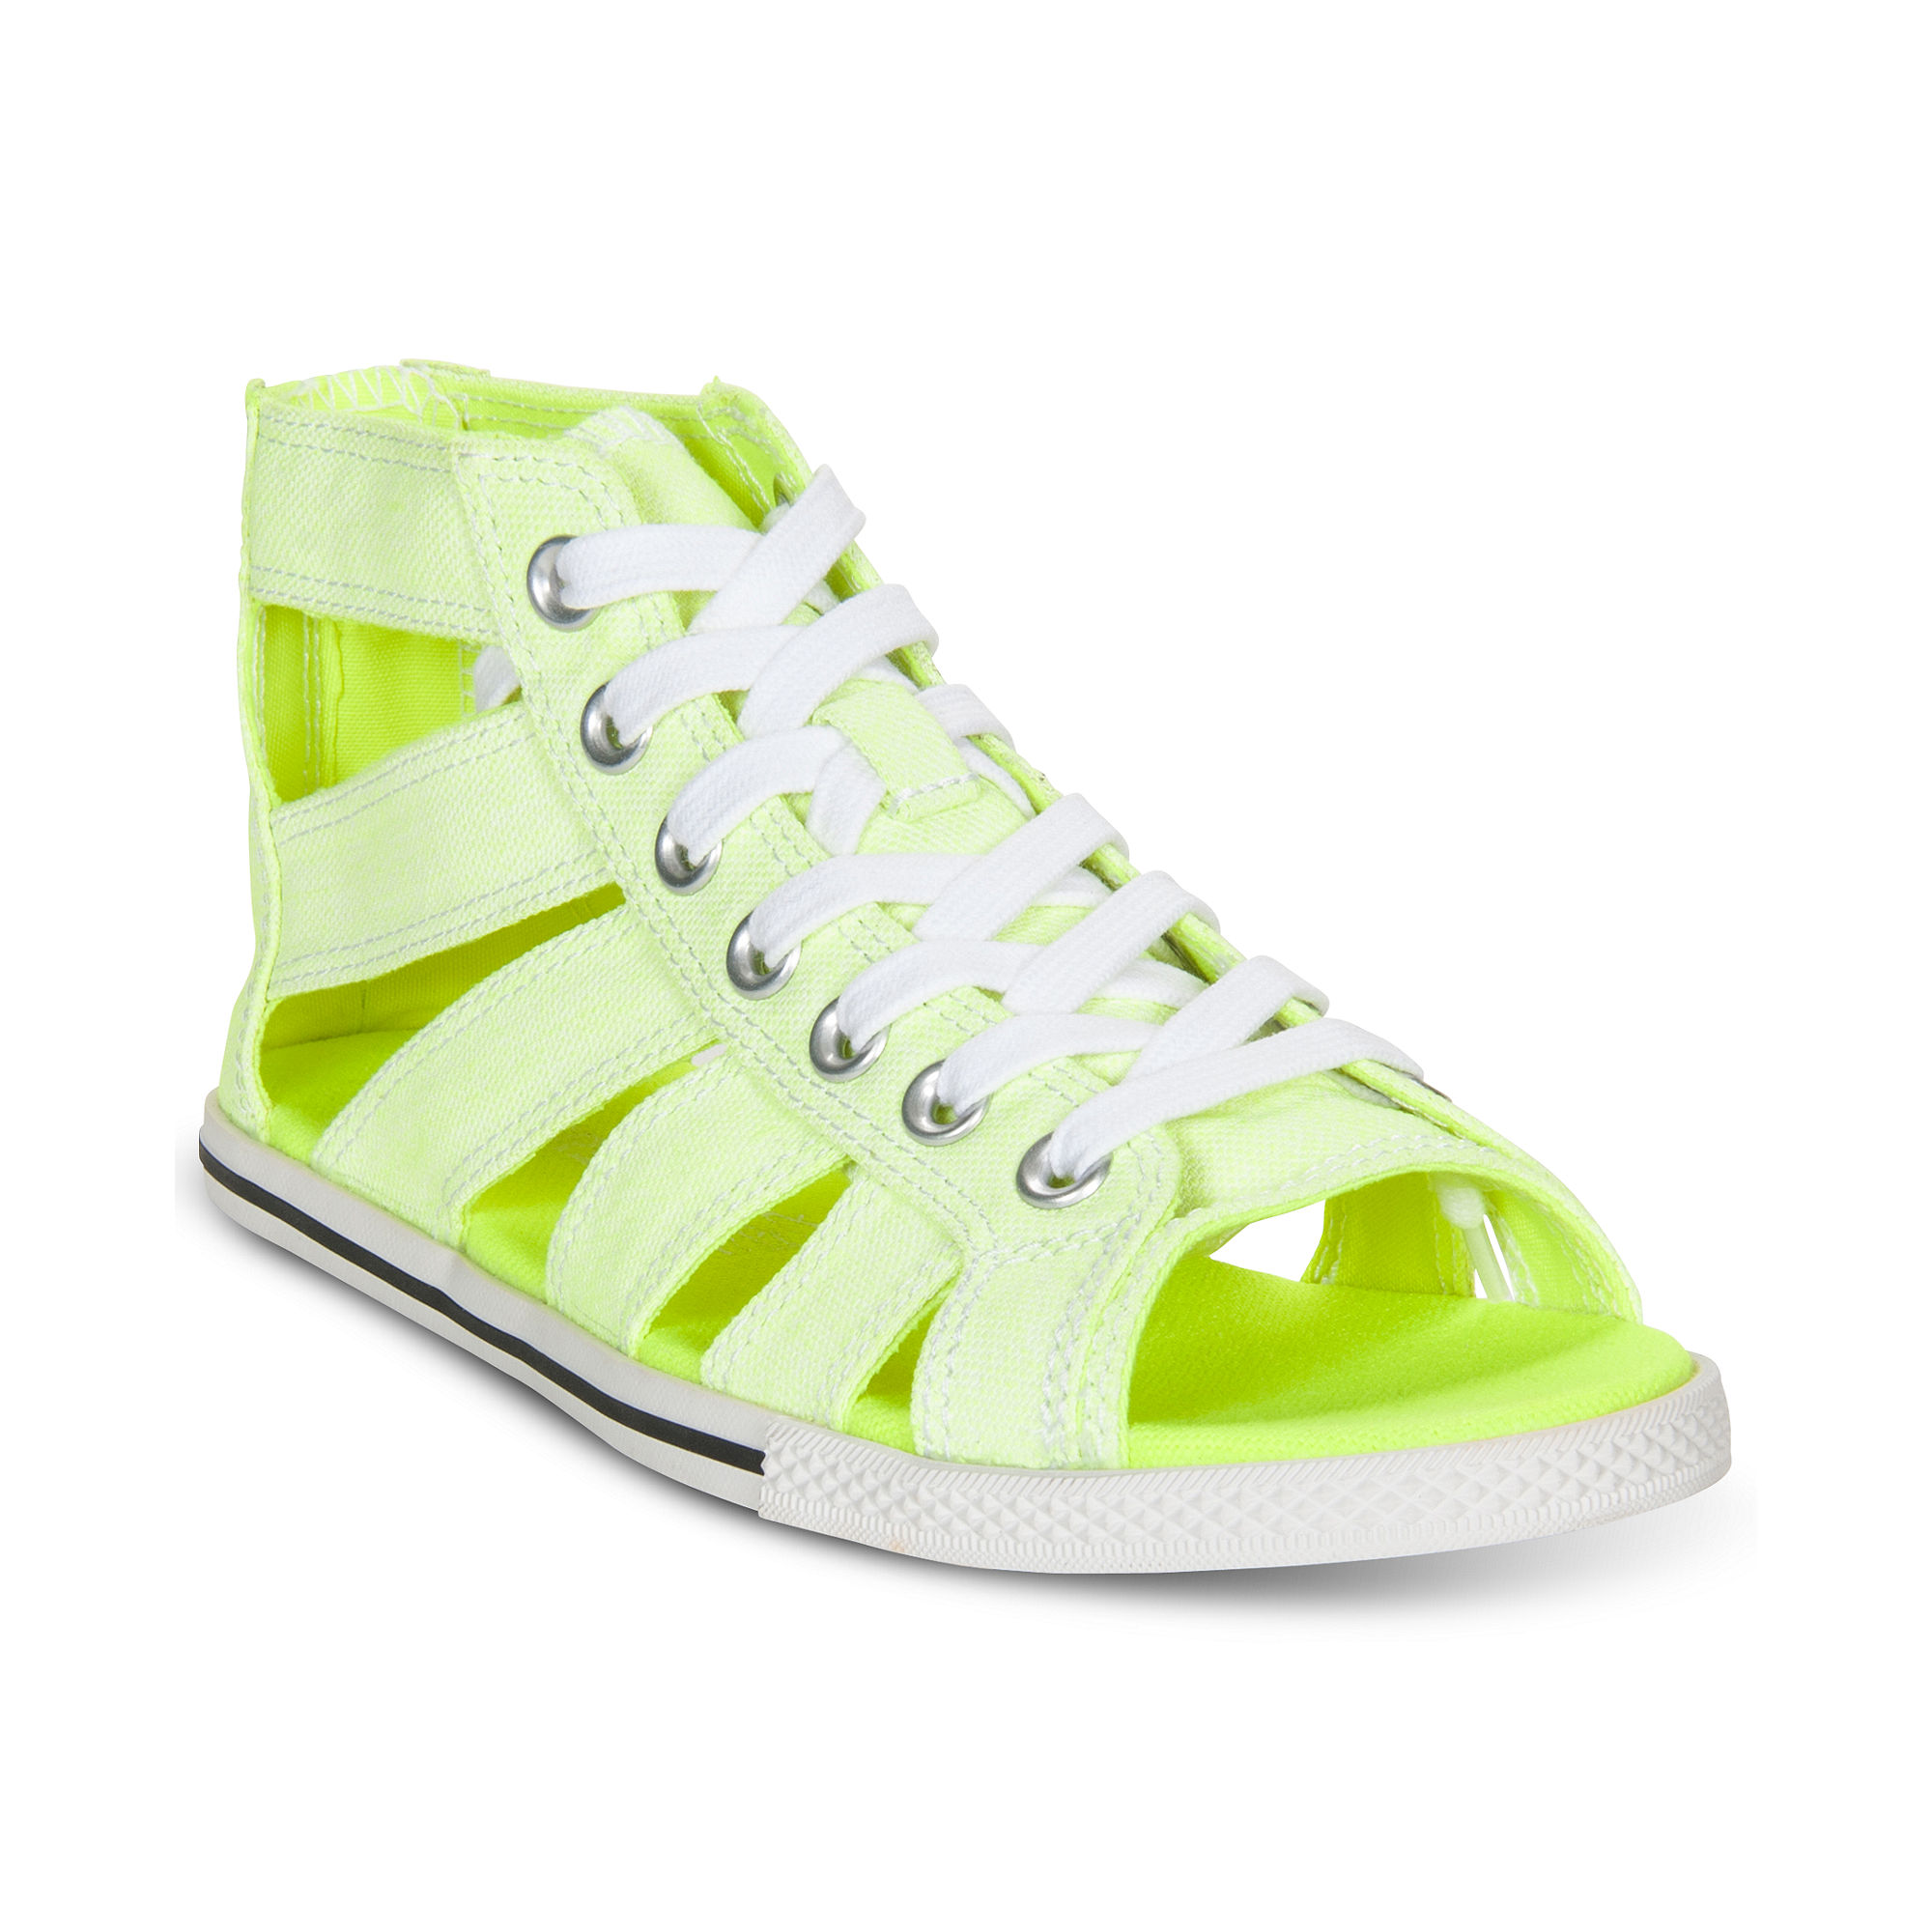 Lyst - Converse All Star Gladiator Sneakers in Green f143ba0b4